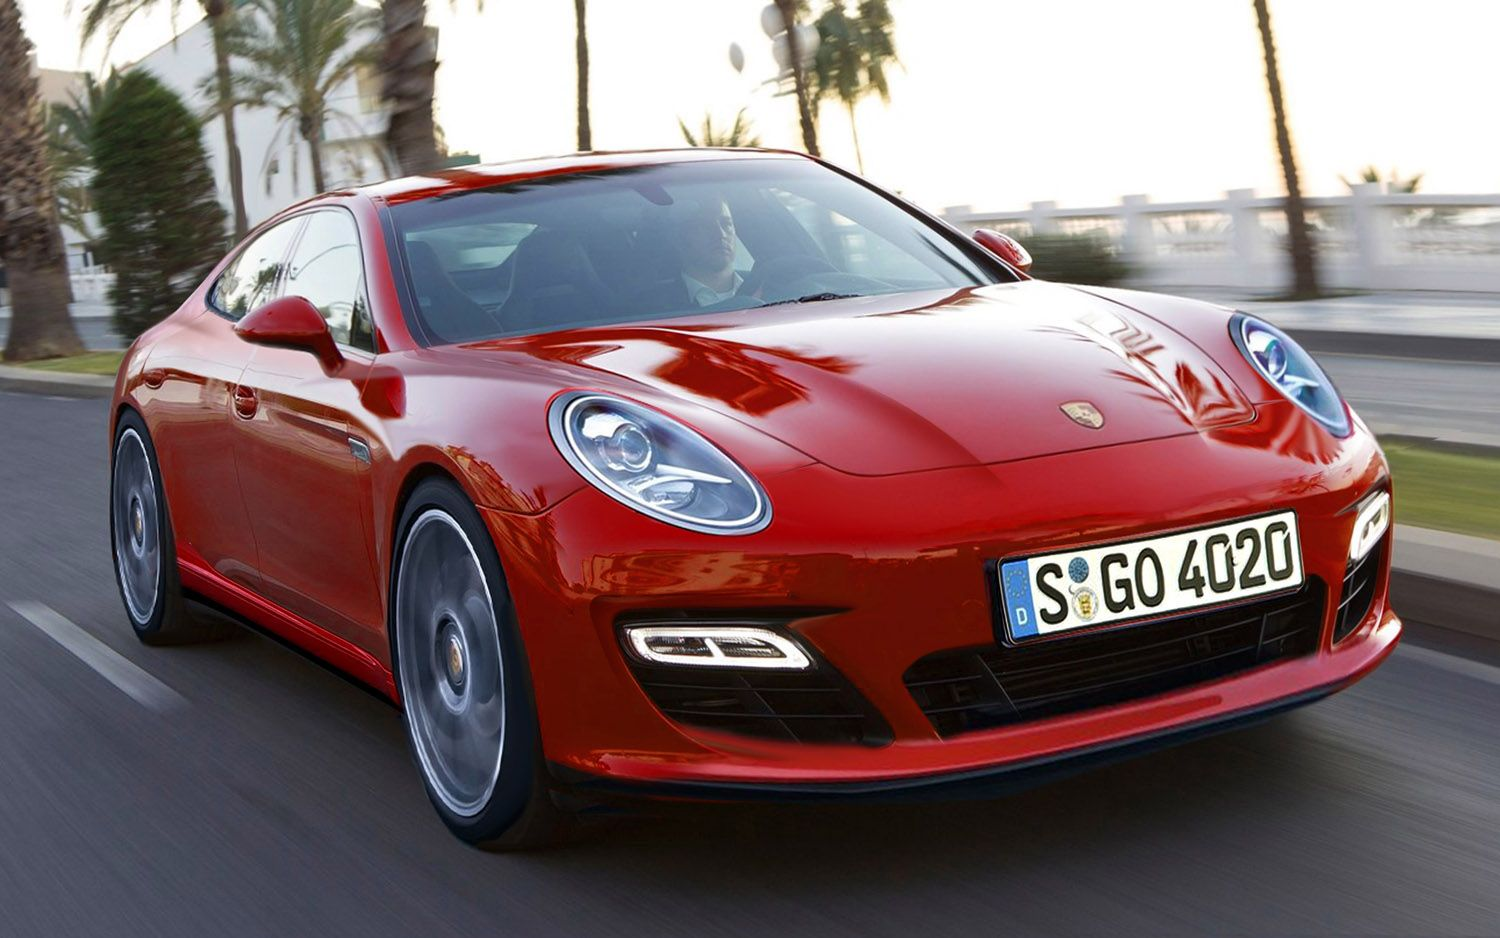 2018 Porsche Pajun Colors Release Date Redesign Price The Is A New Suv Cars With Diminished Car That Particulars Several